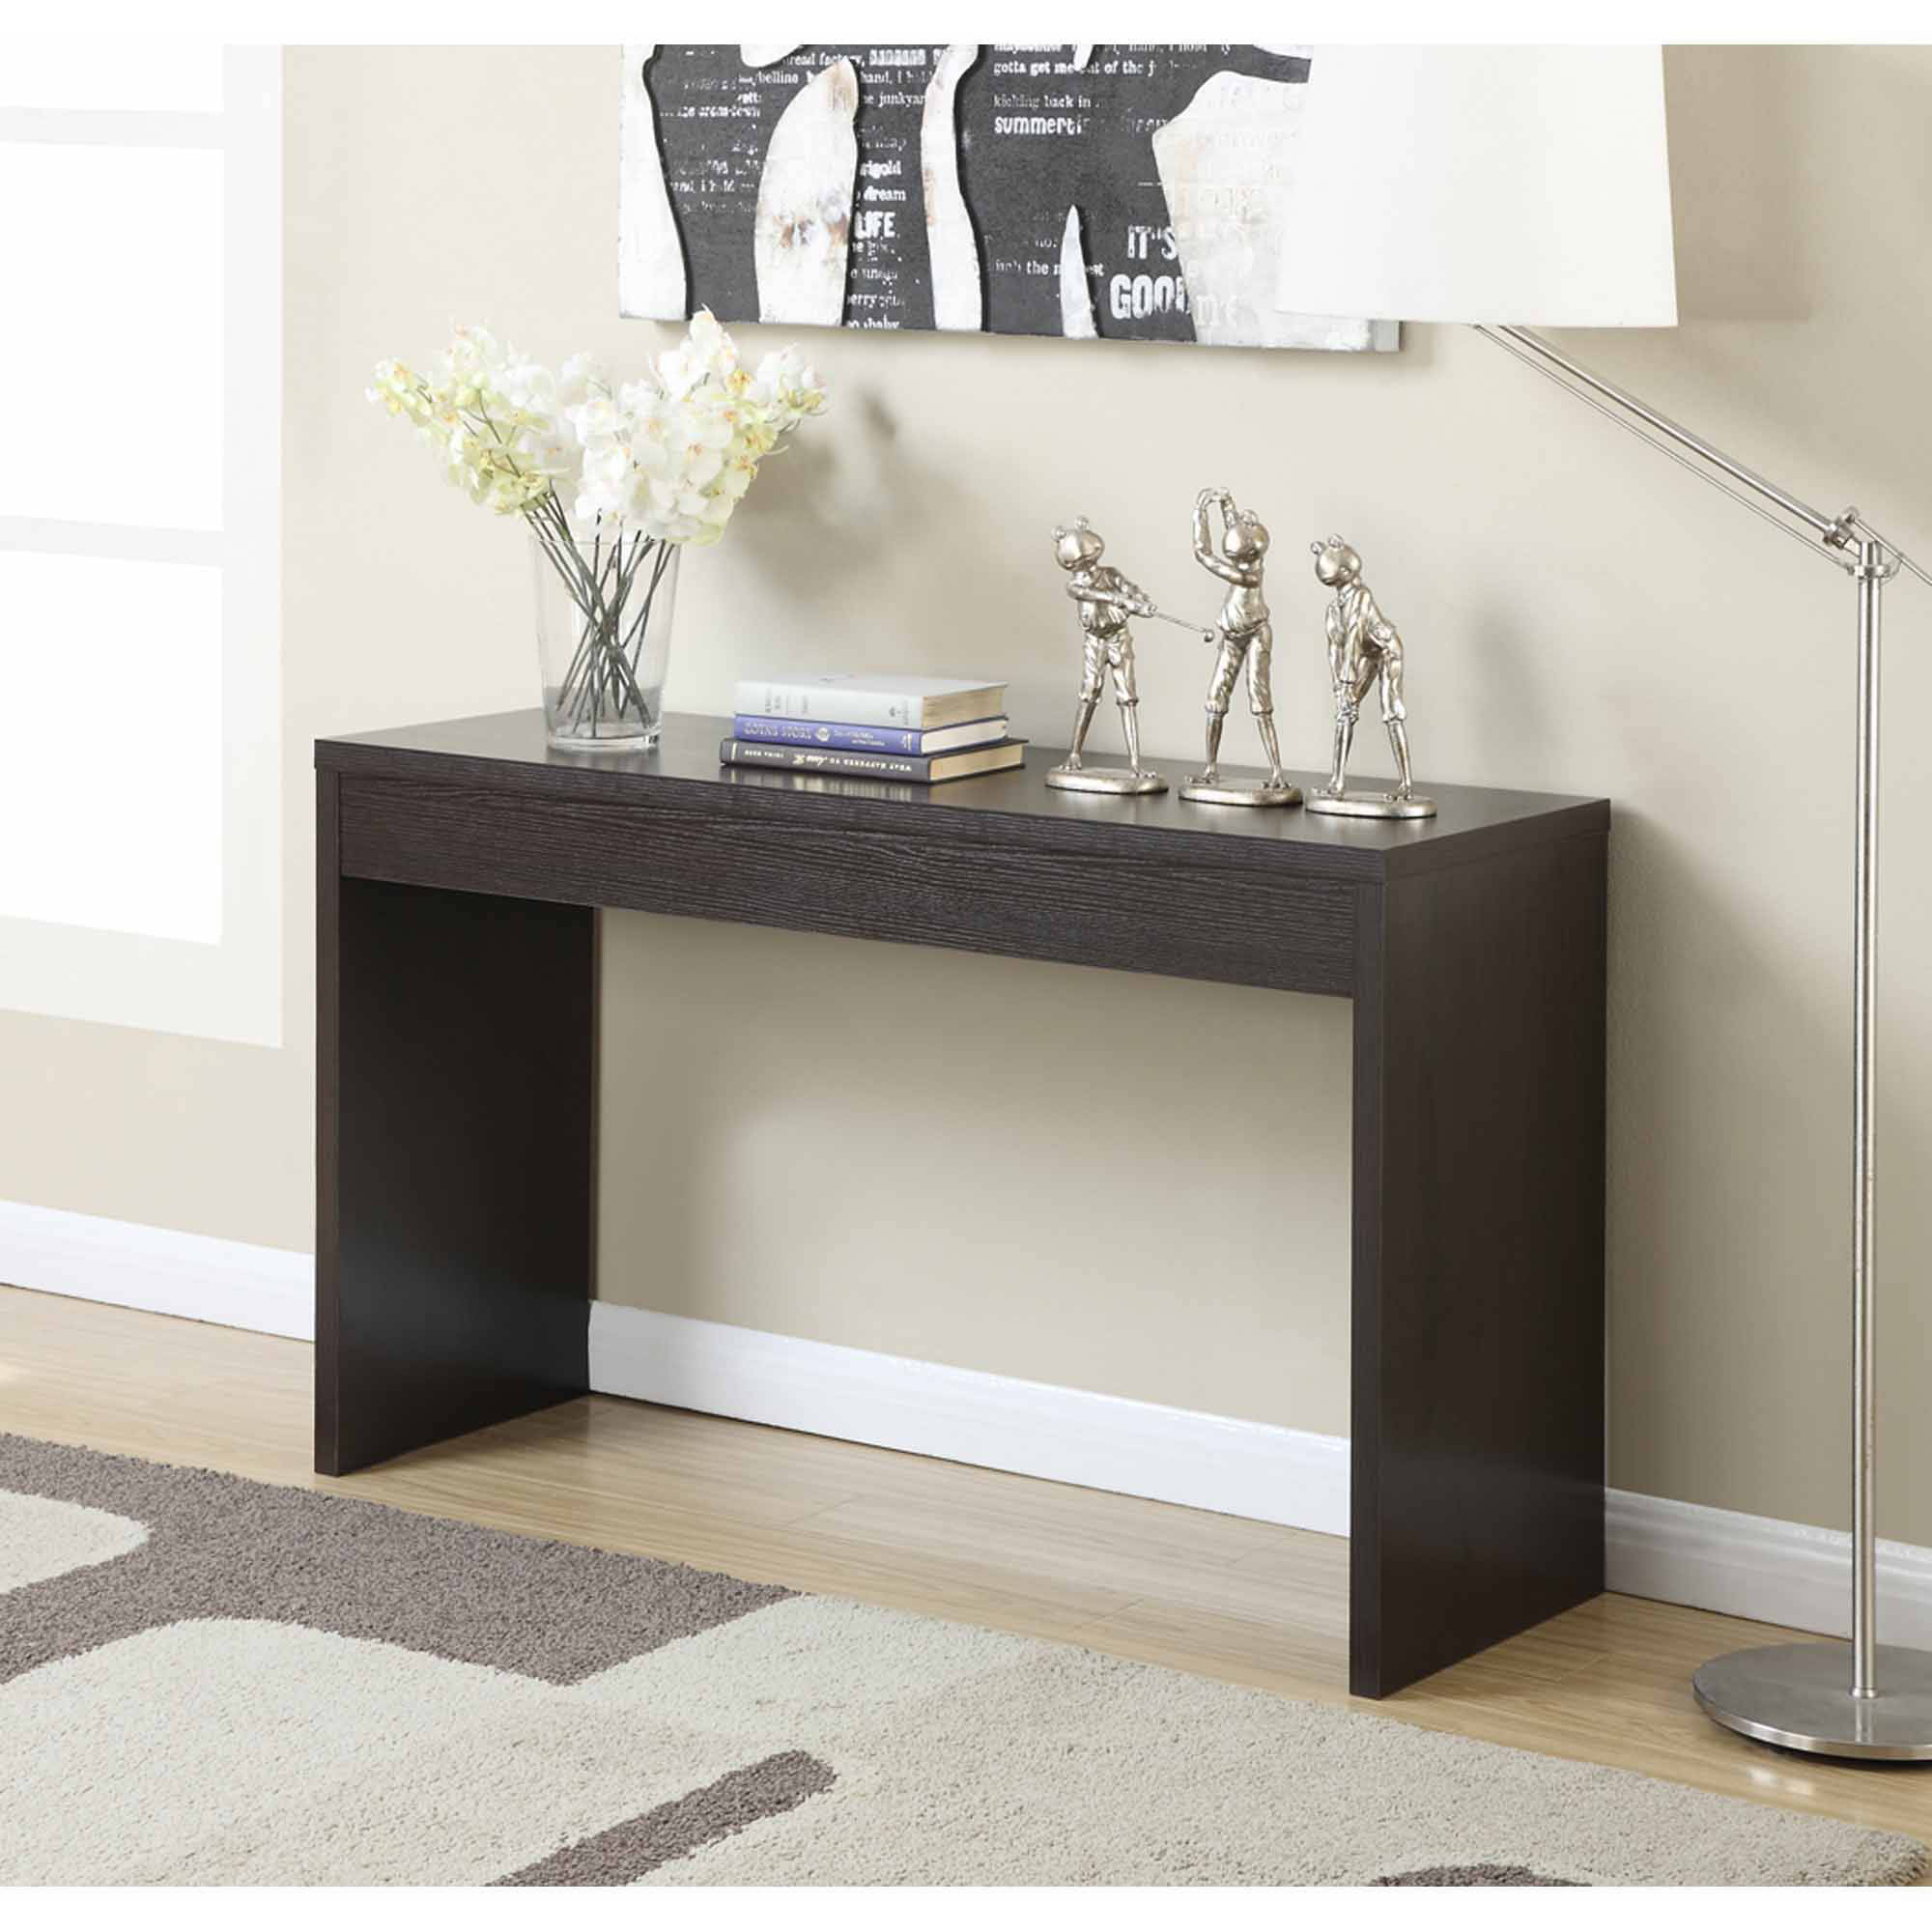 Hall Console Tables With Storage console table with drawers and shelves. durham console table